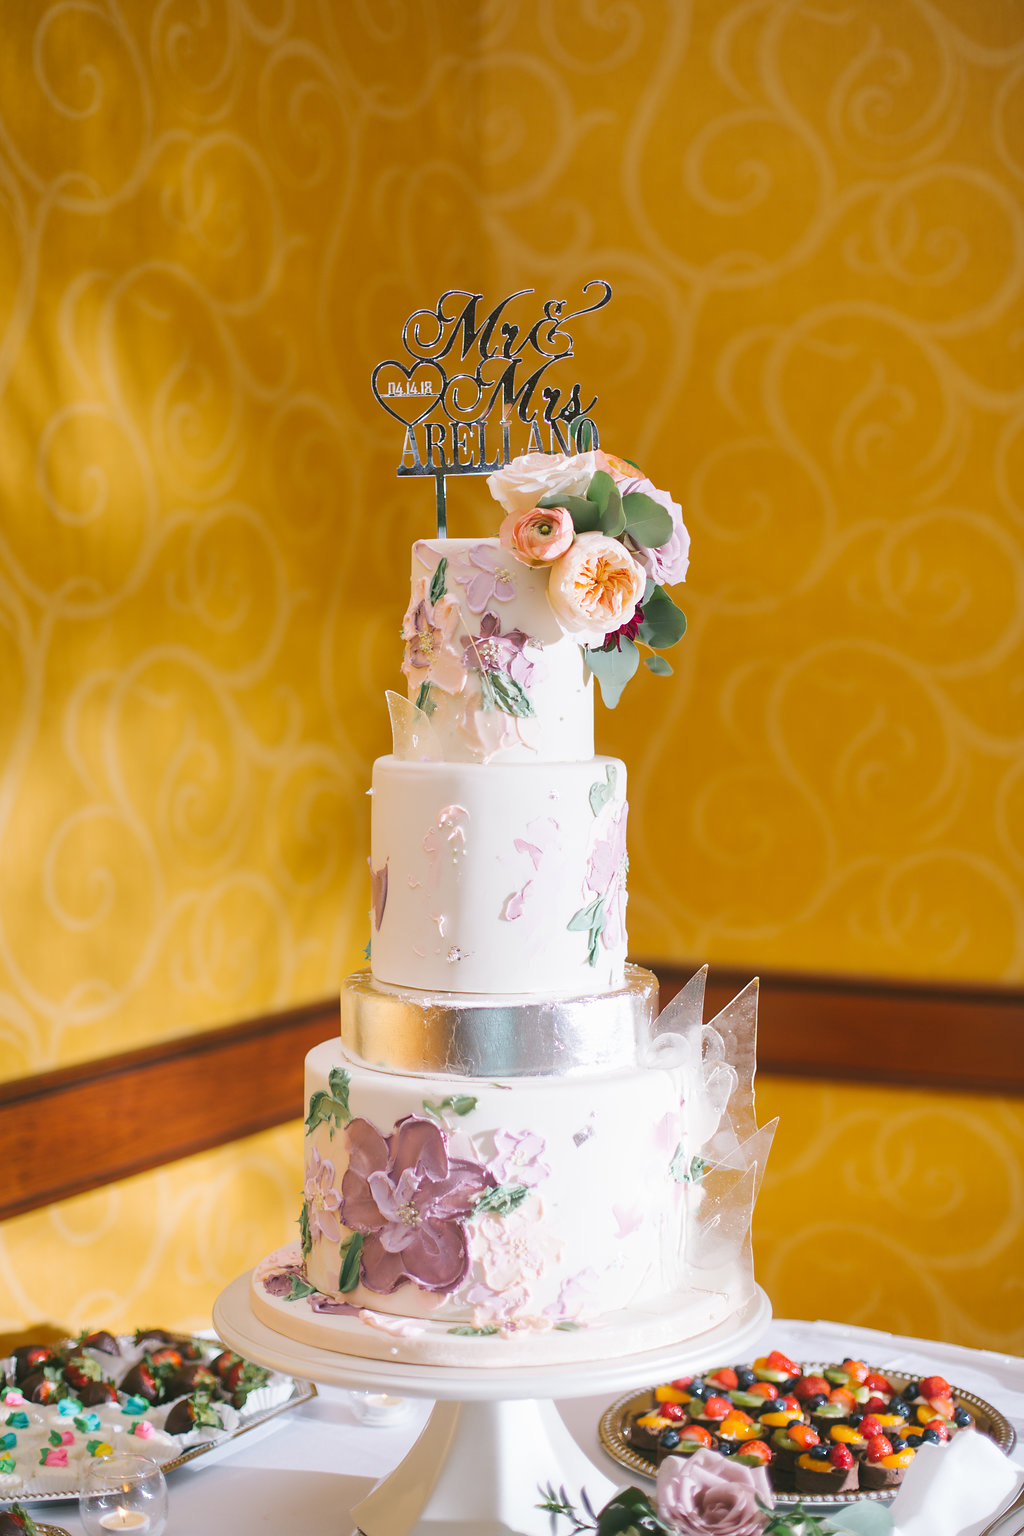 Elegant Four Tier Wedding Cake with Frosted Lilac Floral Decor and Silver Tier with Real Coral and Greenery Florals and Silver Lasercut Cake Topper | Tampa Bay Photographer Kera Photography | Wedding Cake Shop The Artistic Whisk